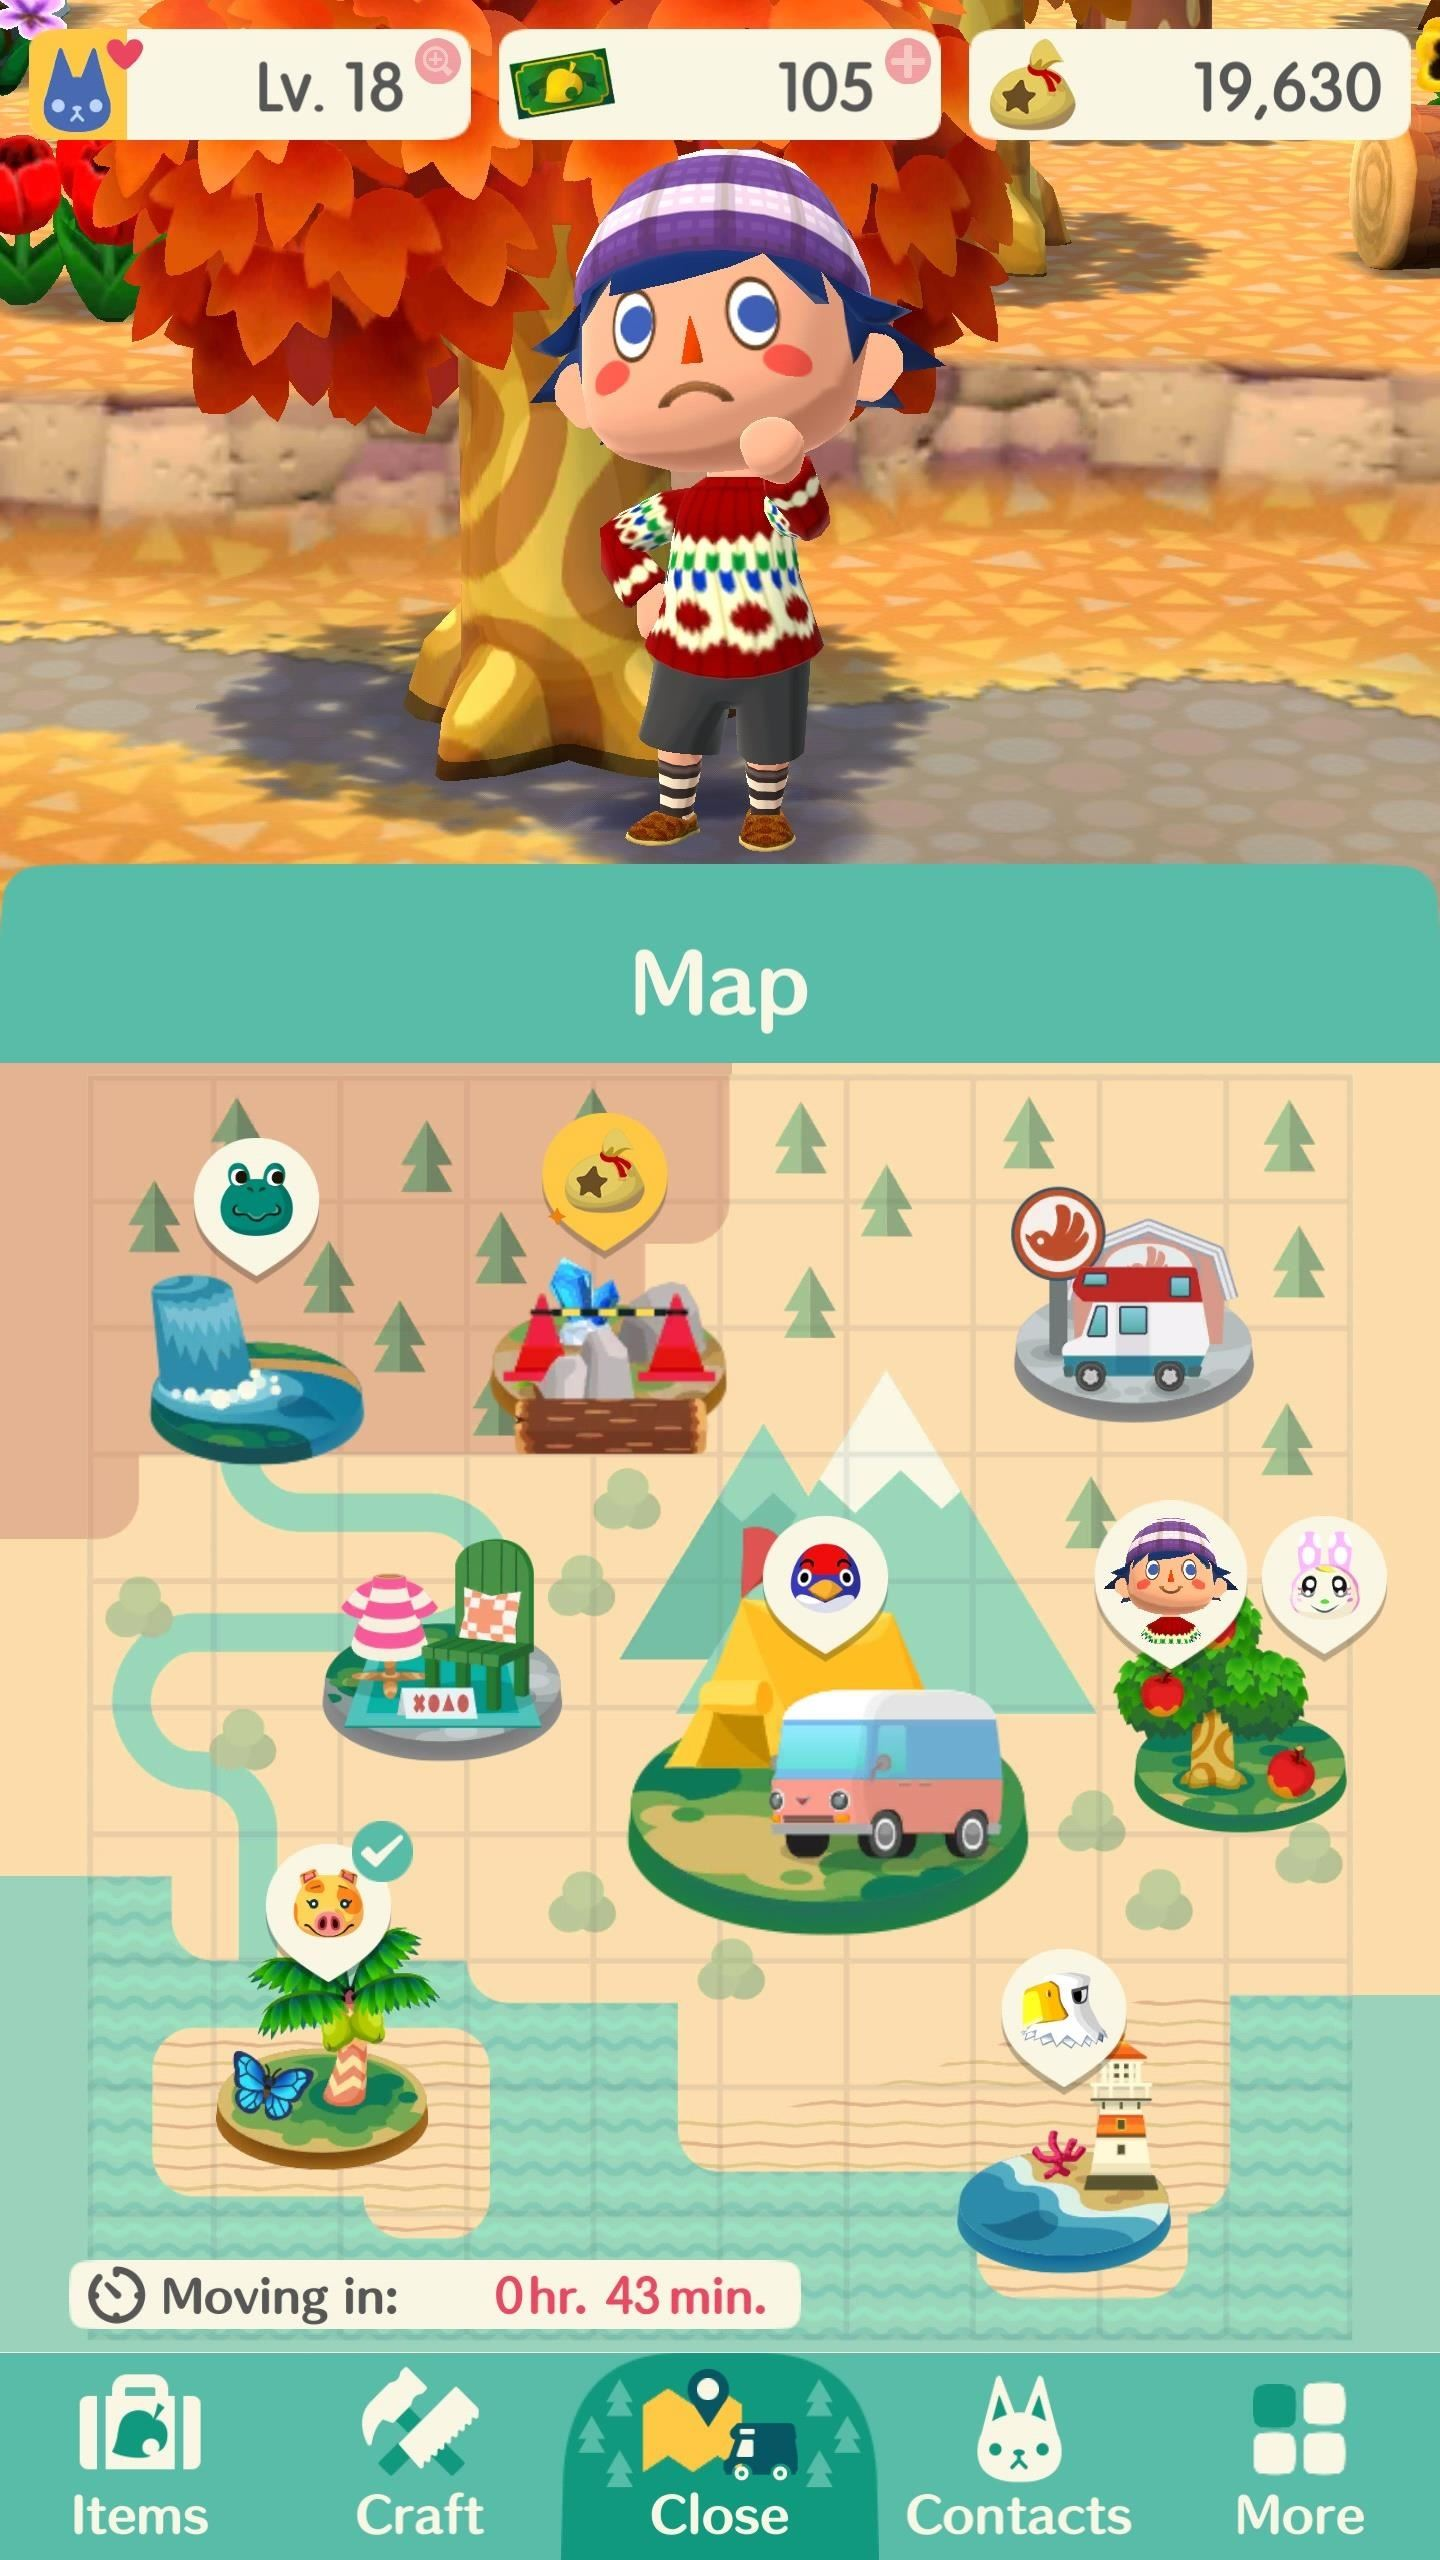 Pocket Camp 101: How to Build Up Supplies in Animal Crossing